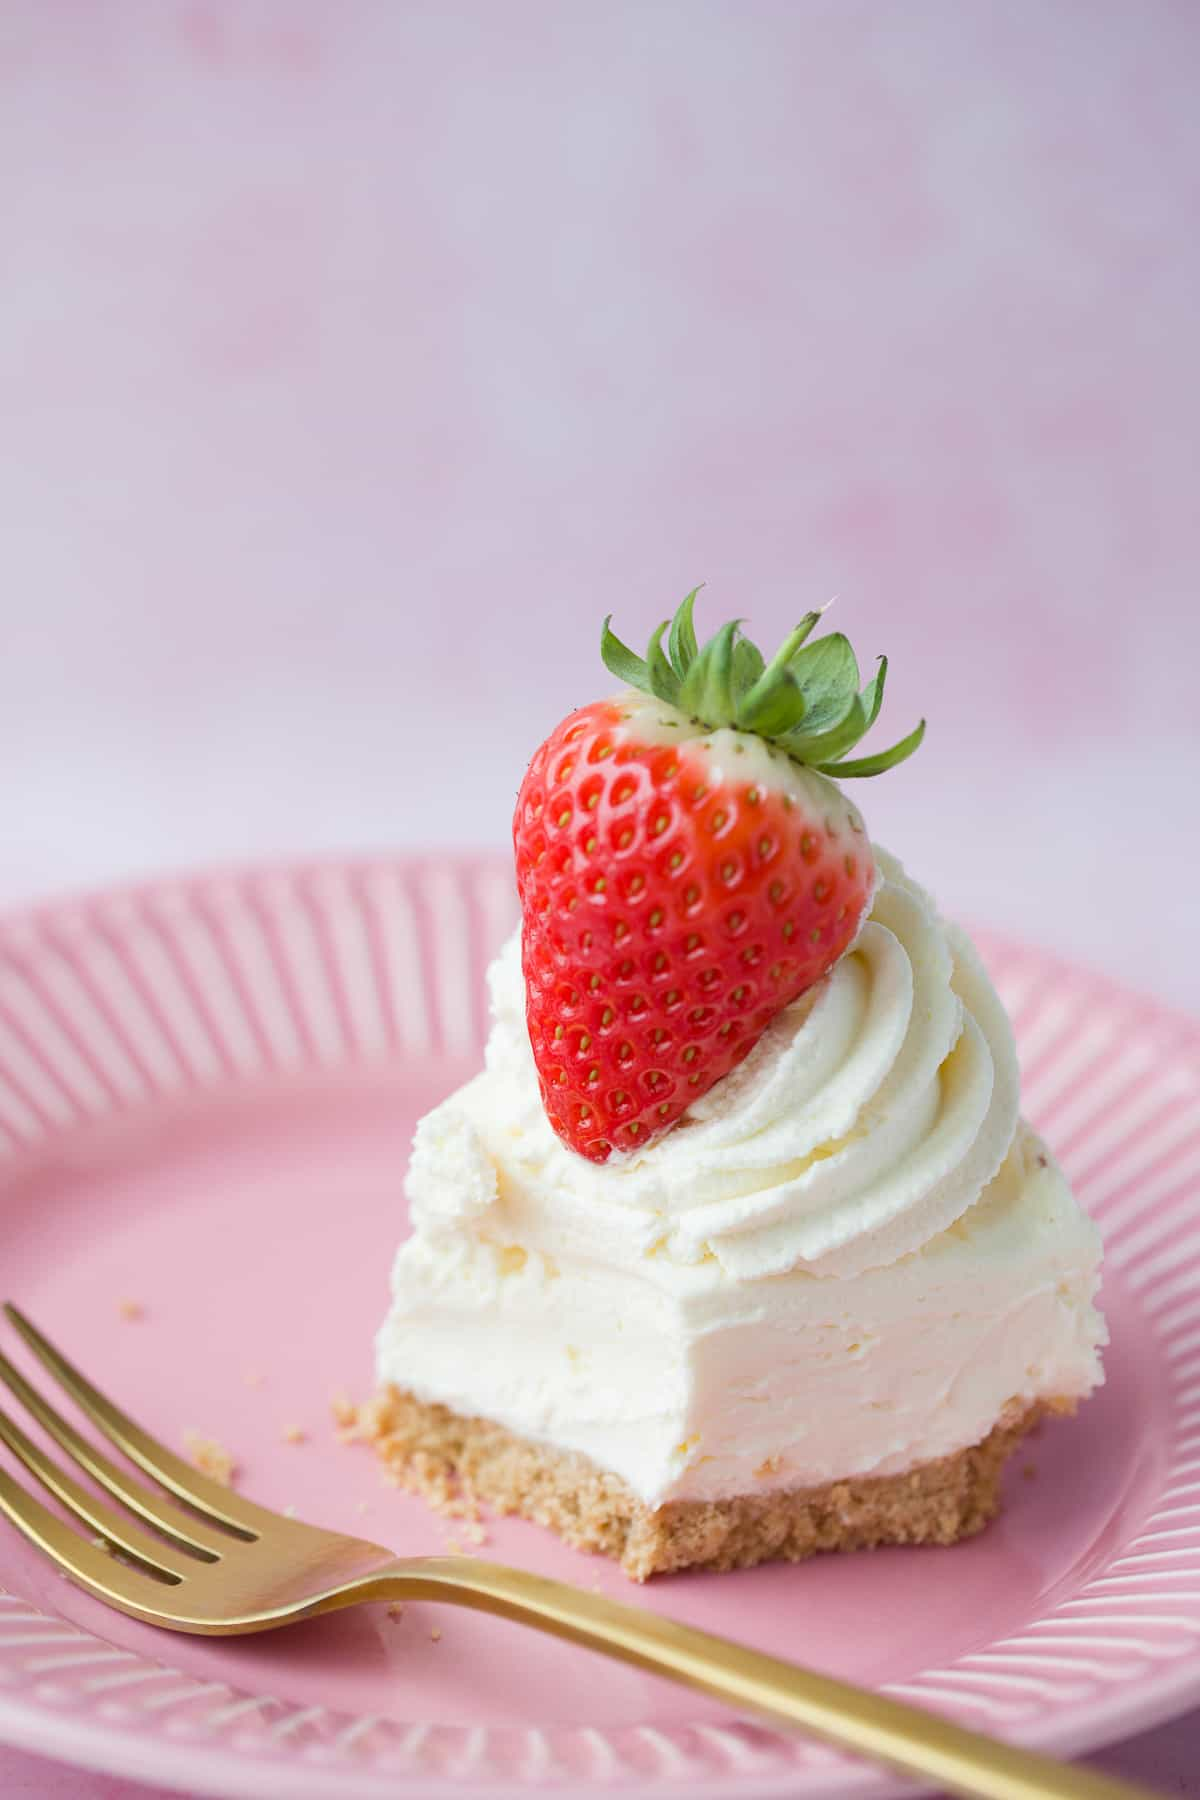 A single slice of vanilla cheesecake that has been half-eaten on a pink plate.